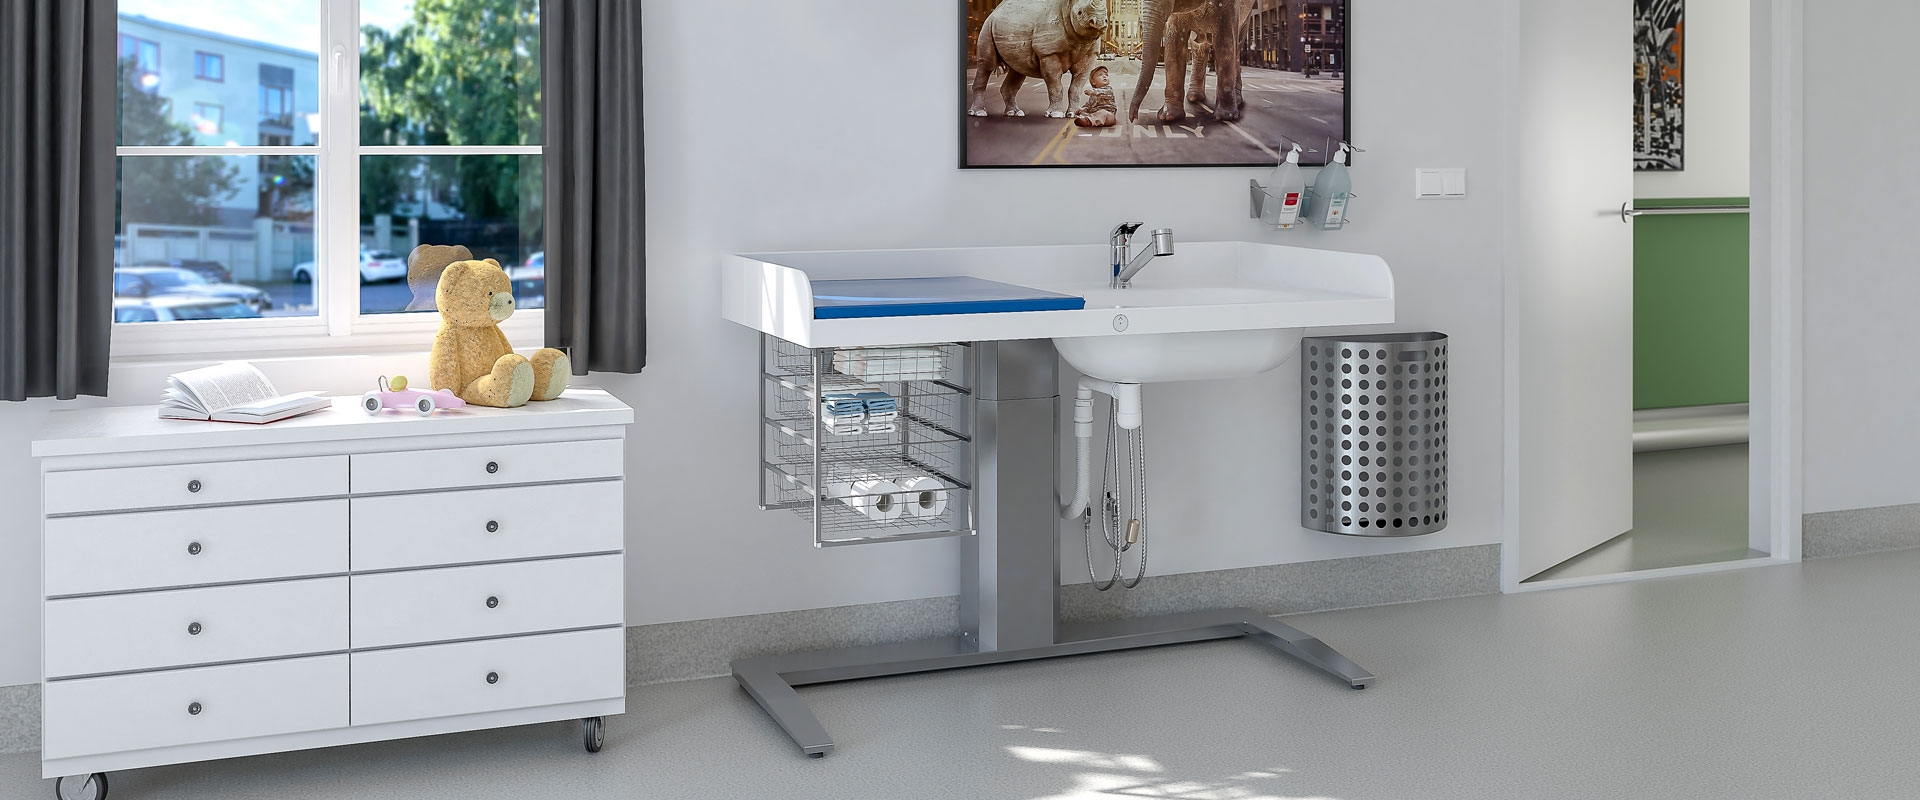 Baby changing table 343 - bathtub